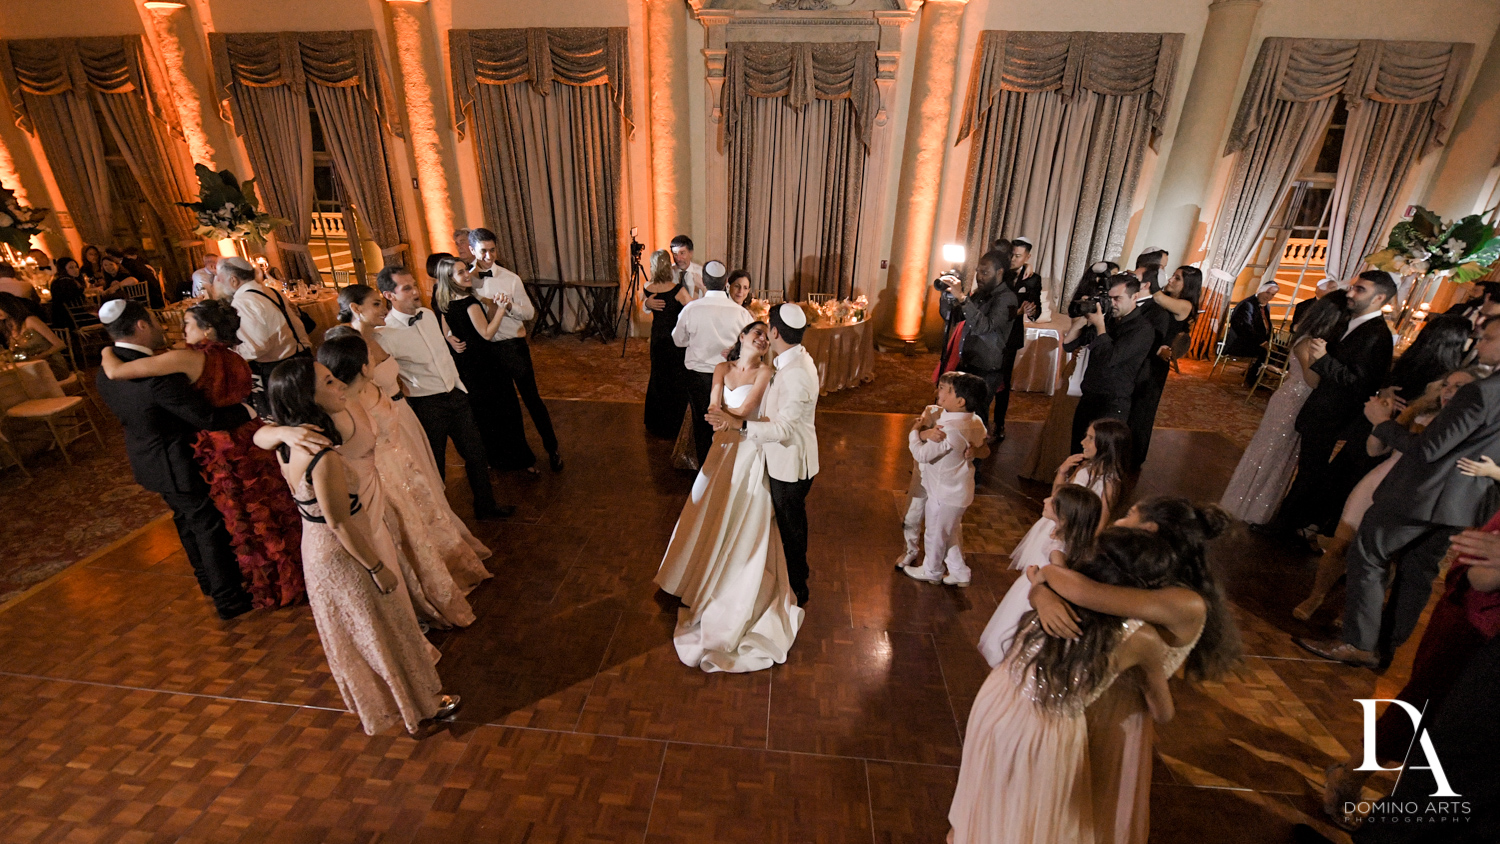 dancing at Modern Luxury Jewish Wedding Photography at Biltmore Miami Coral Gables